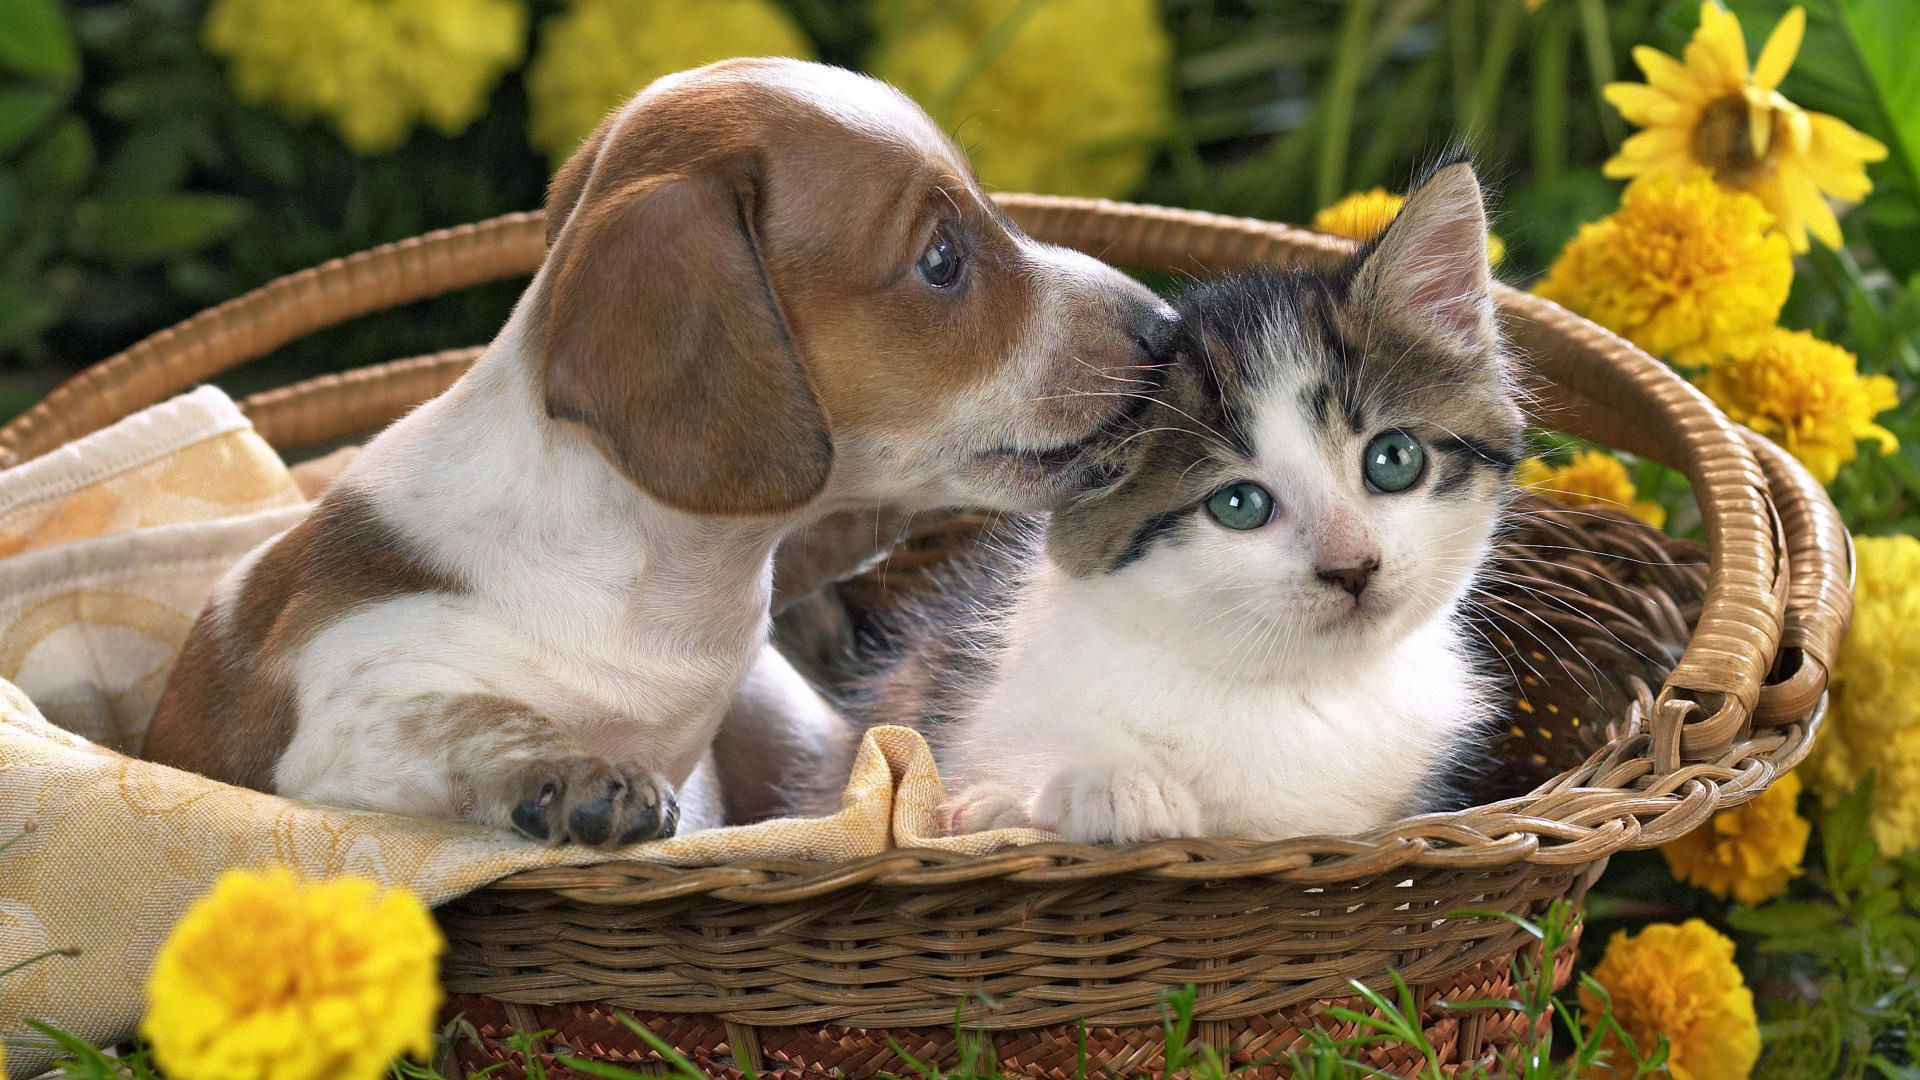 72894 Screensavers and Wallpapers Puppy for phone. Download Animals, Flowers, Friendship, Kitty, Kitten, Puppy, Basket pictures for free